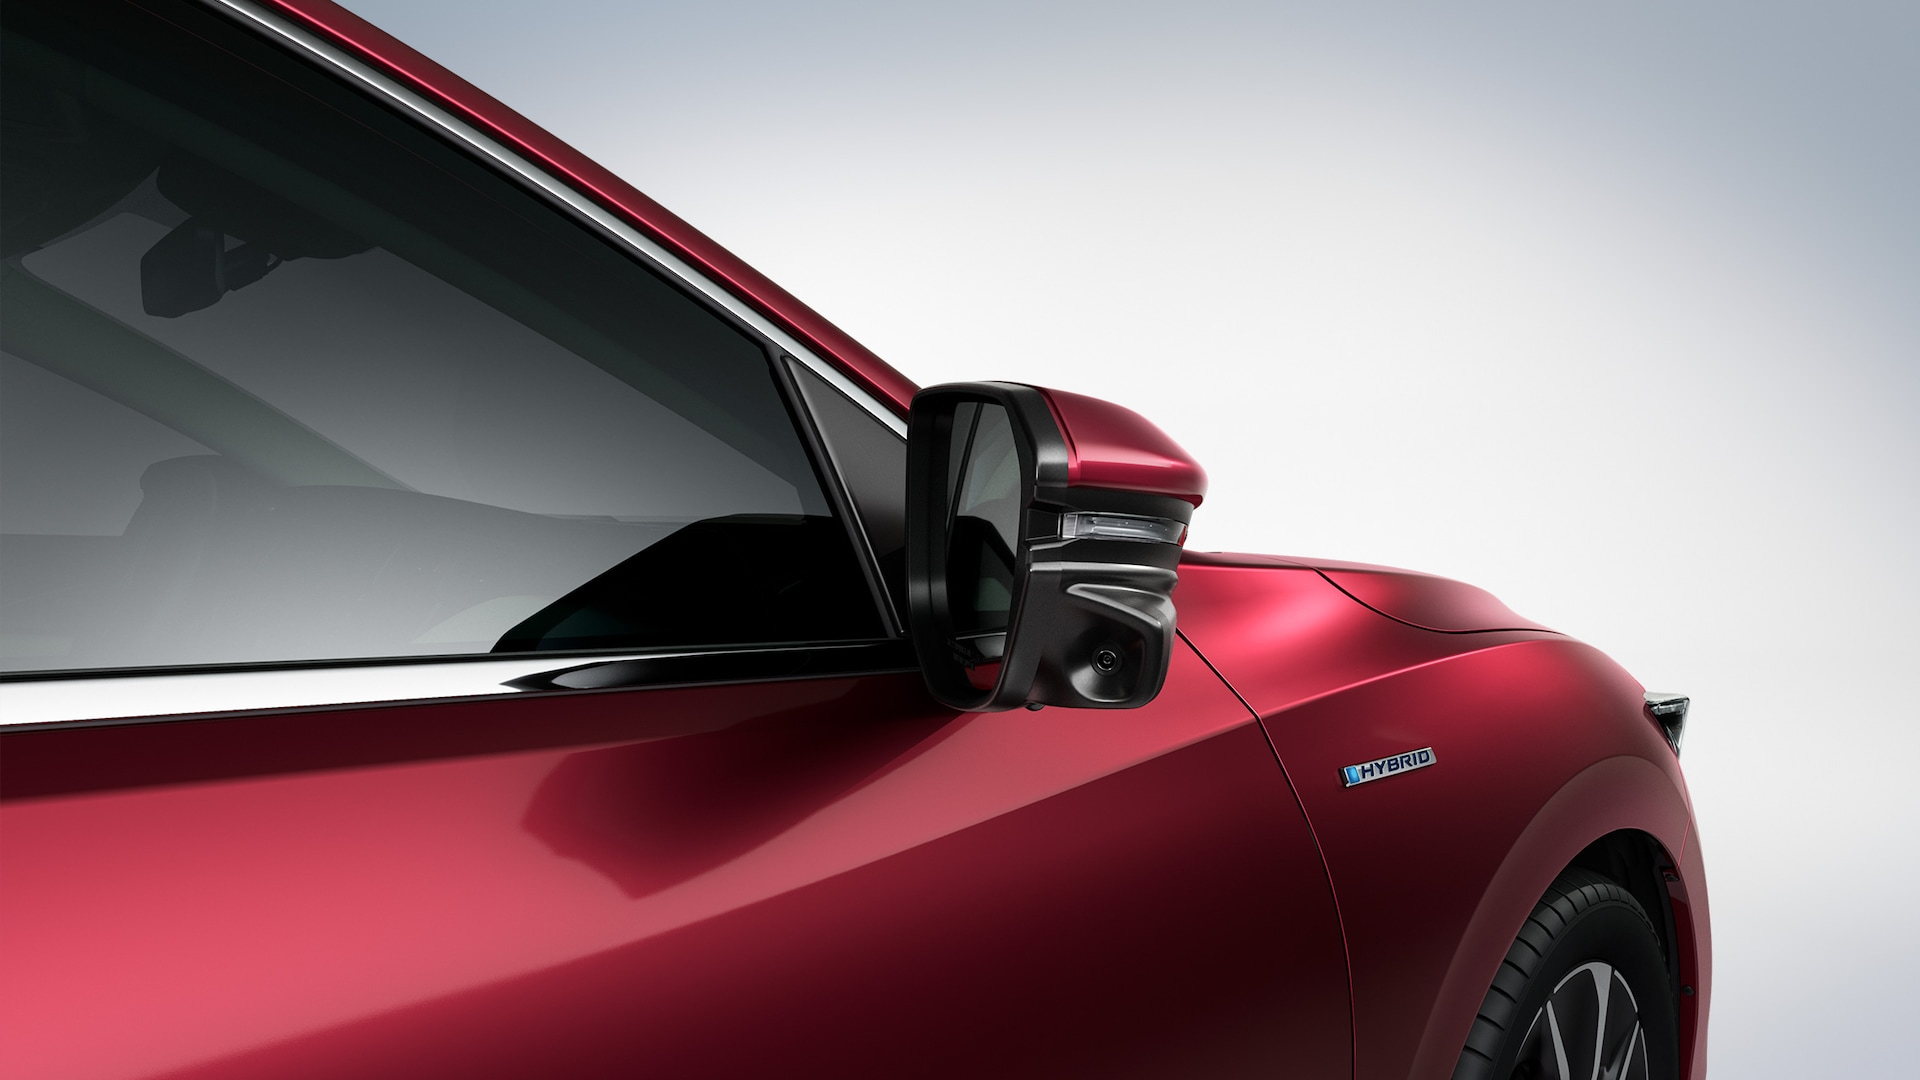 Honda LaneWatch™ camera detail on passenger's side mirror on 2020 Honda Insight in Crimson Pearl.